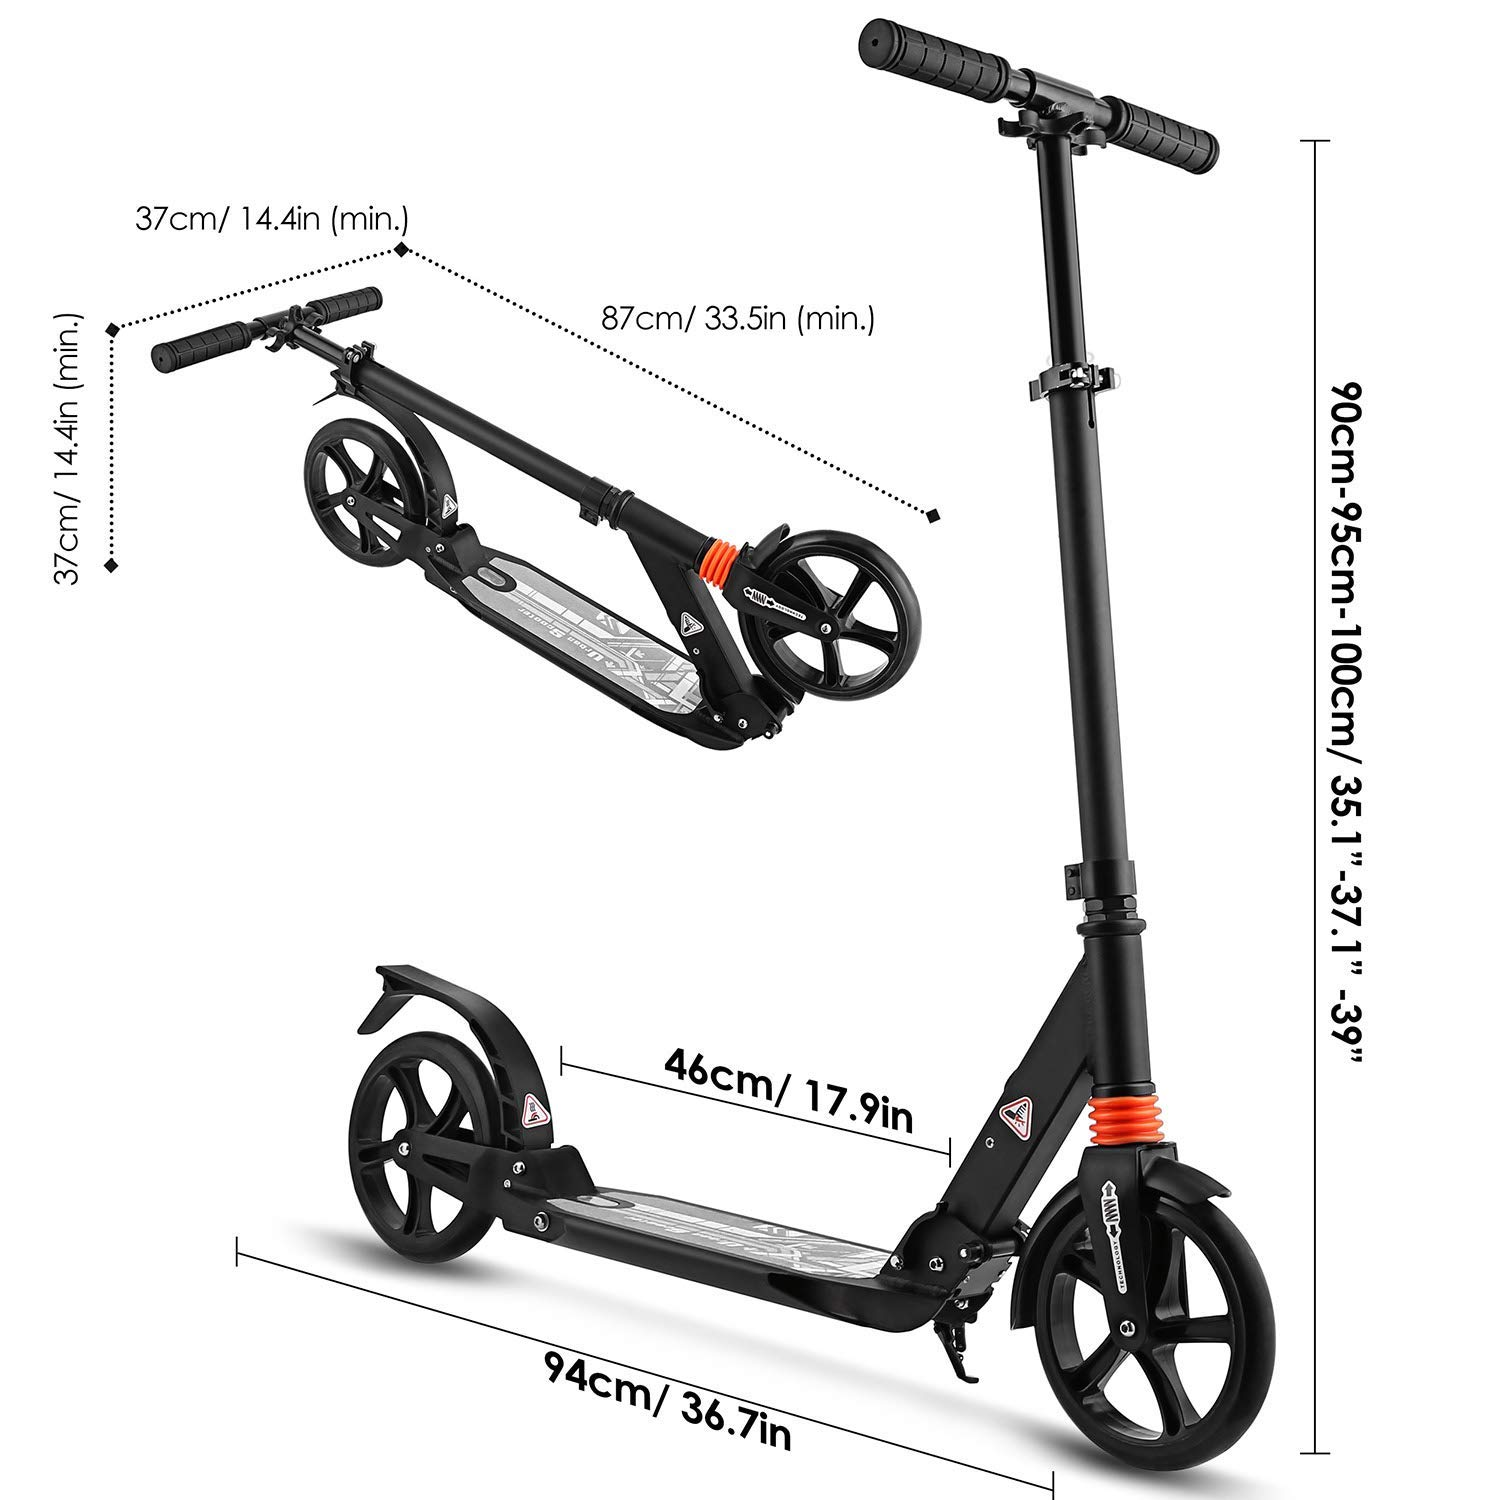 Top 10 Best Kick Scooter For Commuting - Buyer's Guide 42